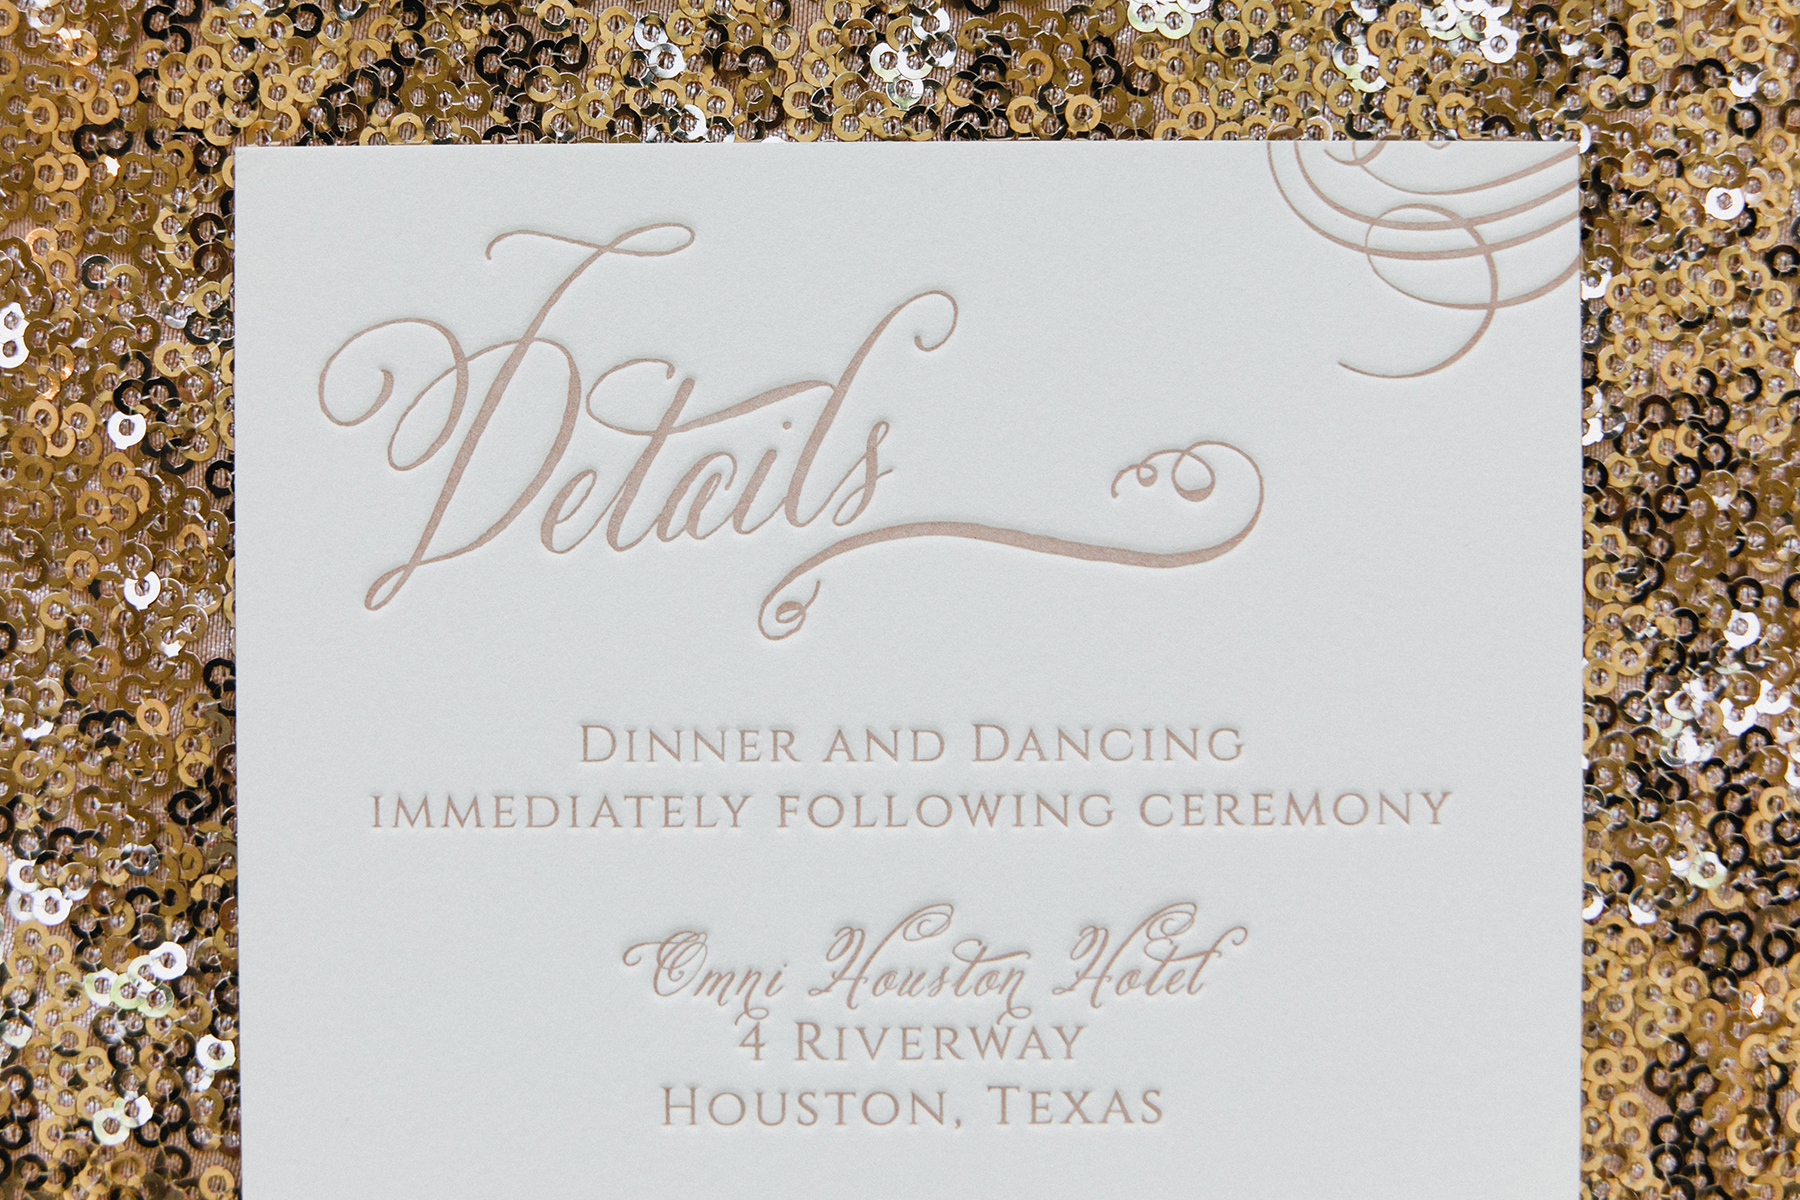 daytoremember.net | Daniel Colvin Photography | Wedding Stationery | A Day To Remember Houston Wedding Planning and Design